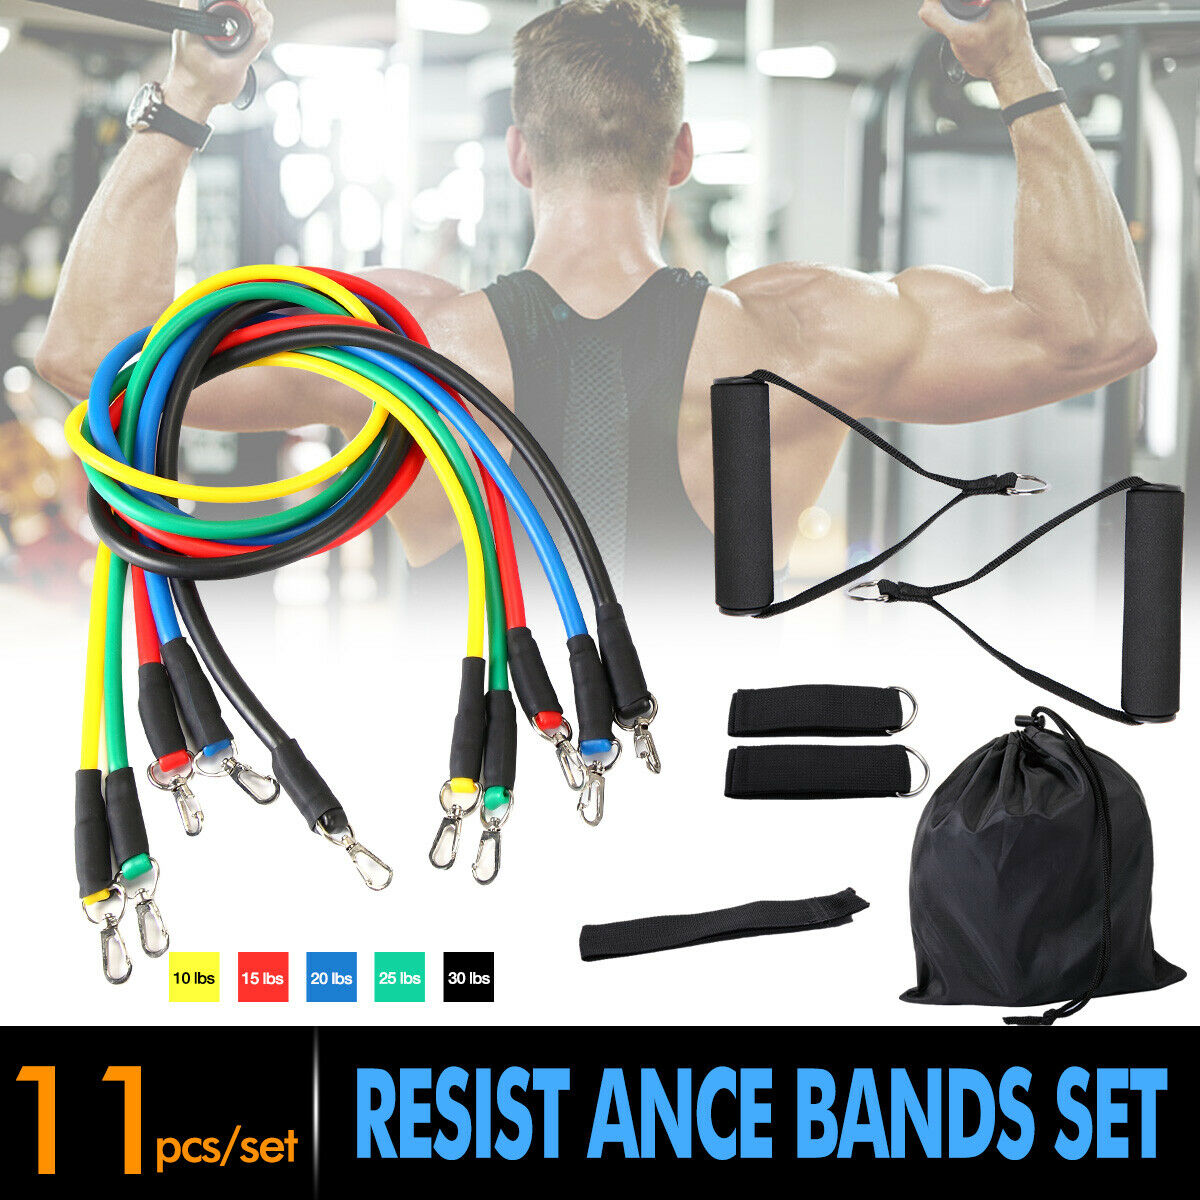 11Pcs Resistance Bands Home Workout Exercise Crossfit Fitness Gym Train US STOCK